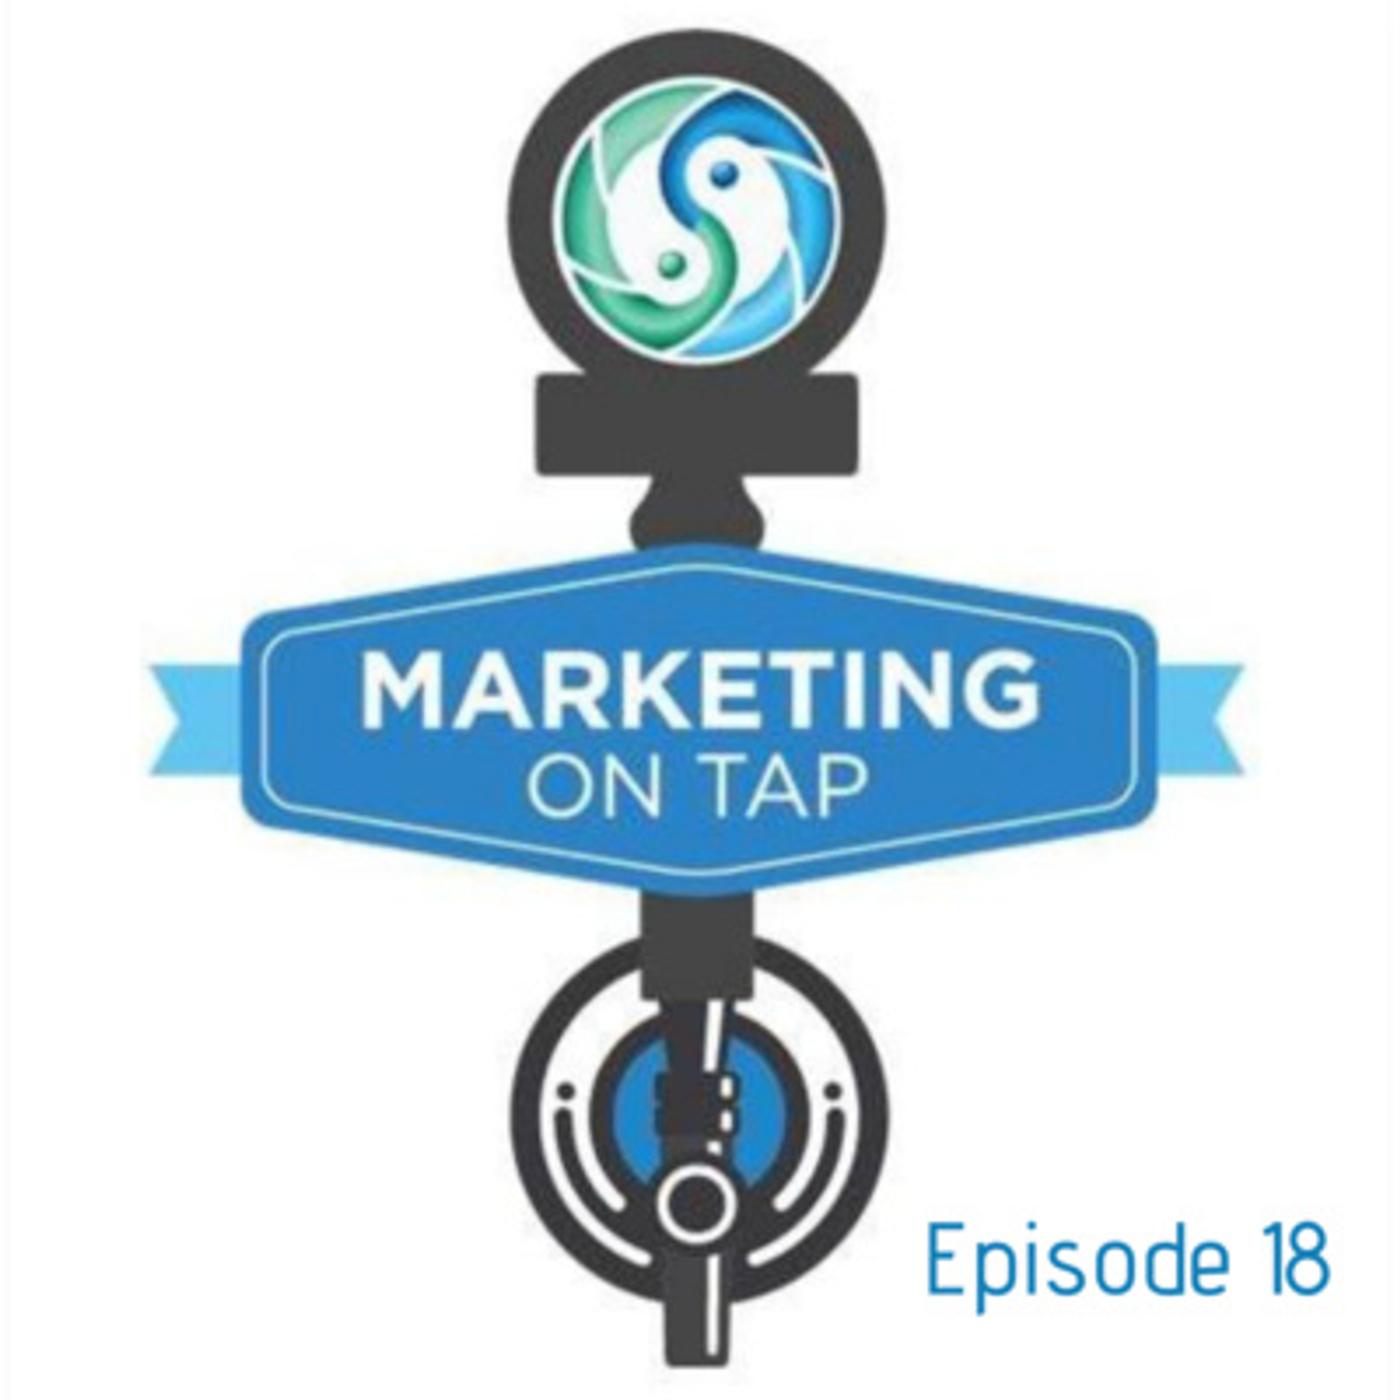 Episode 18: Turning Social Media Haters into Brand Advocates